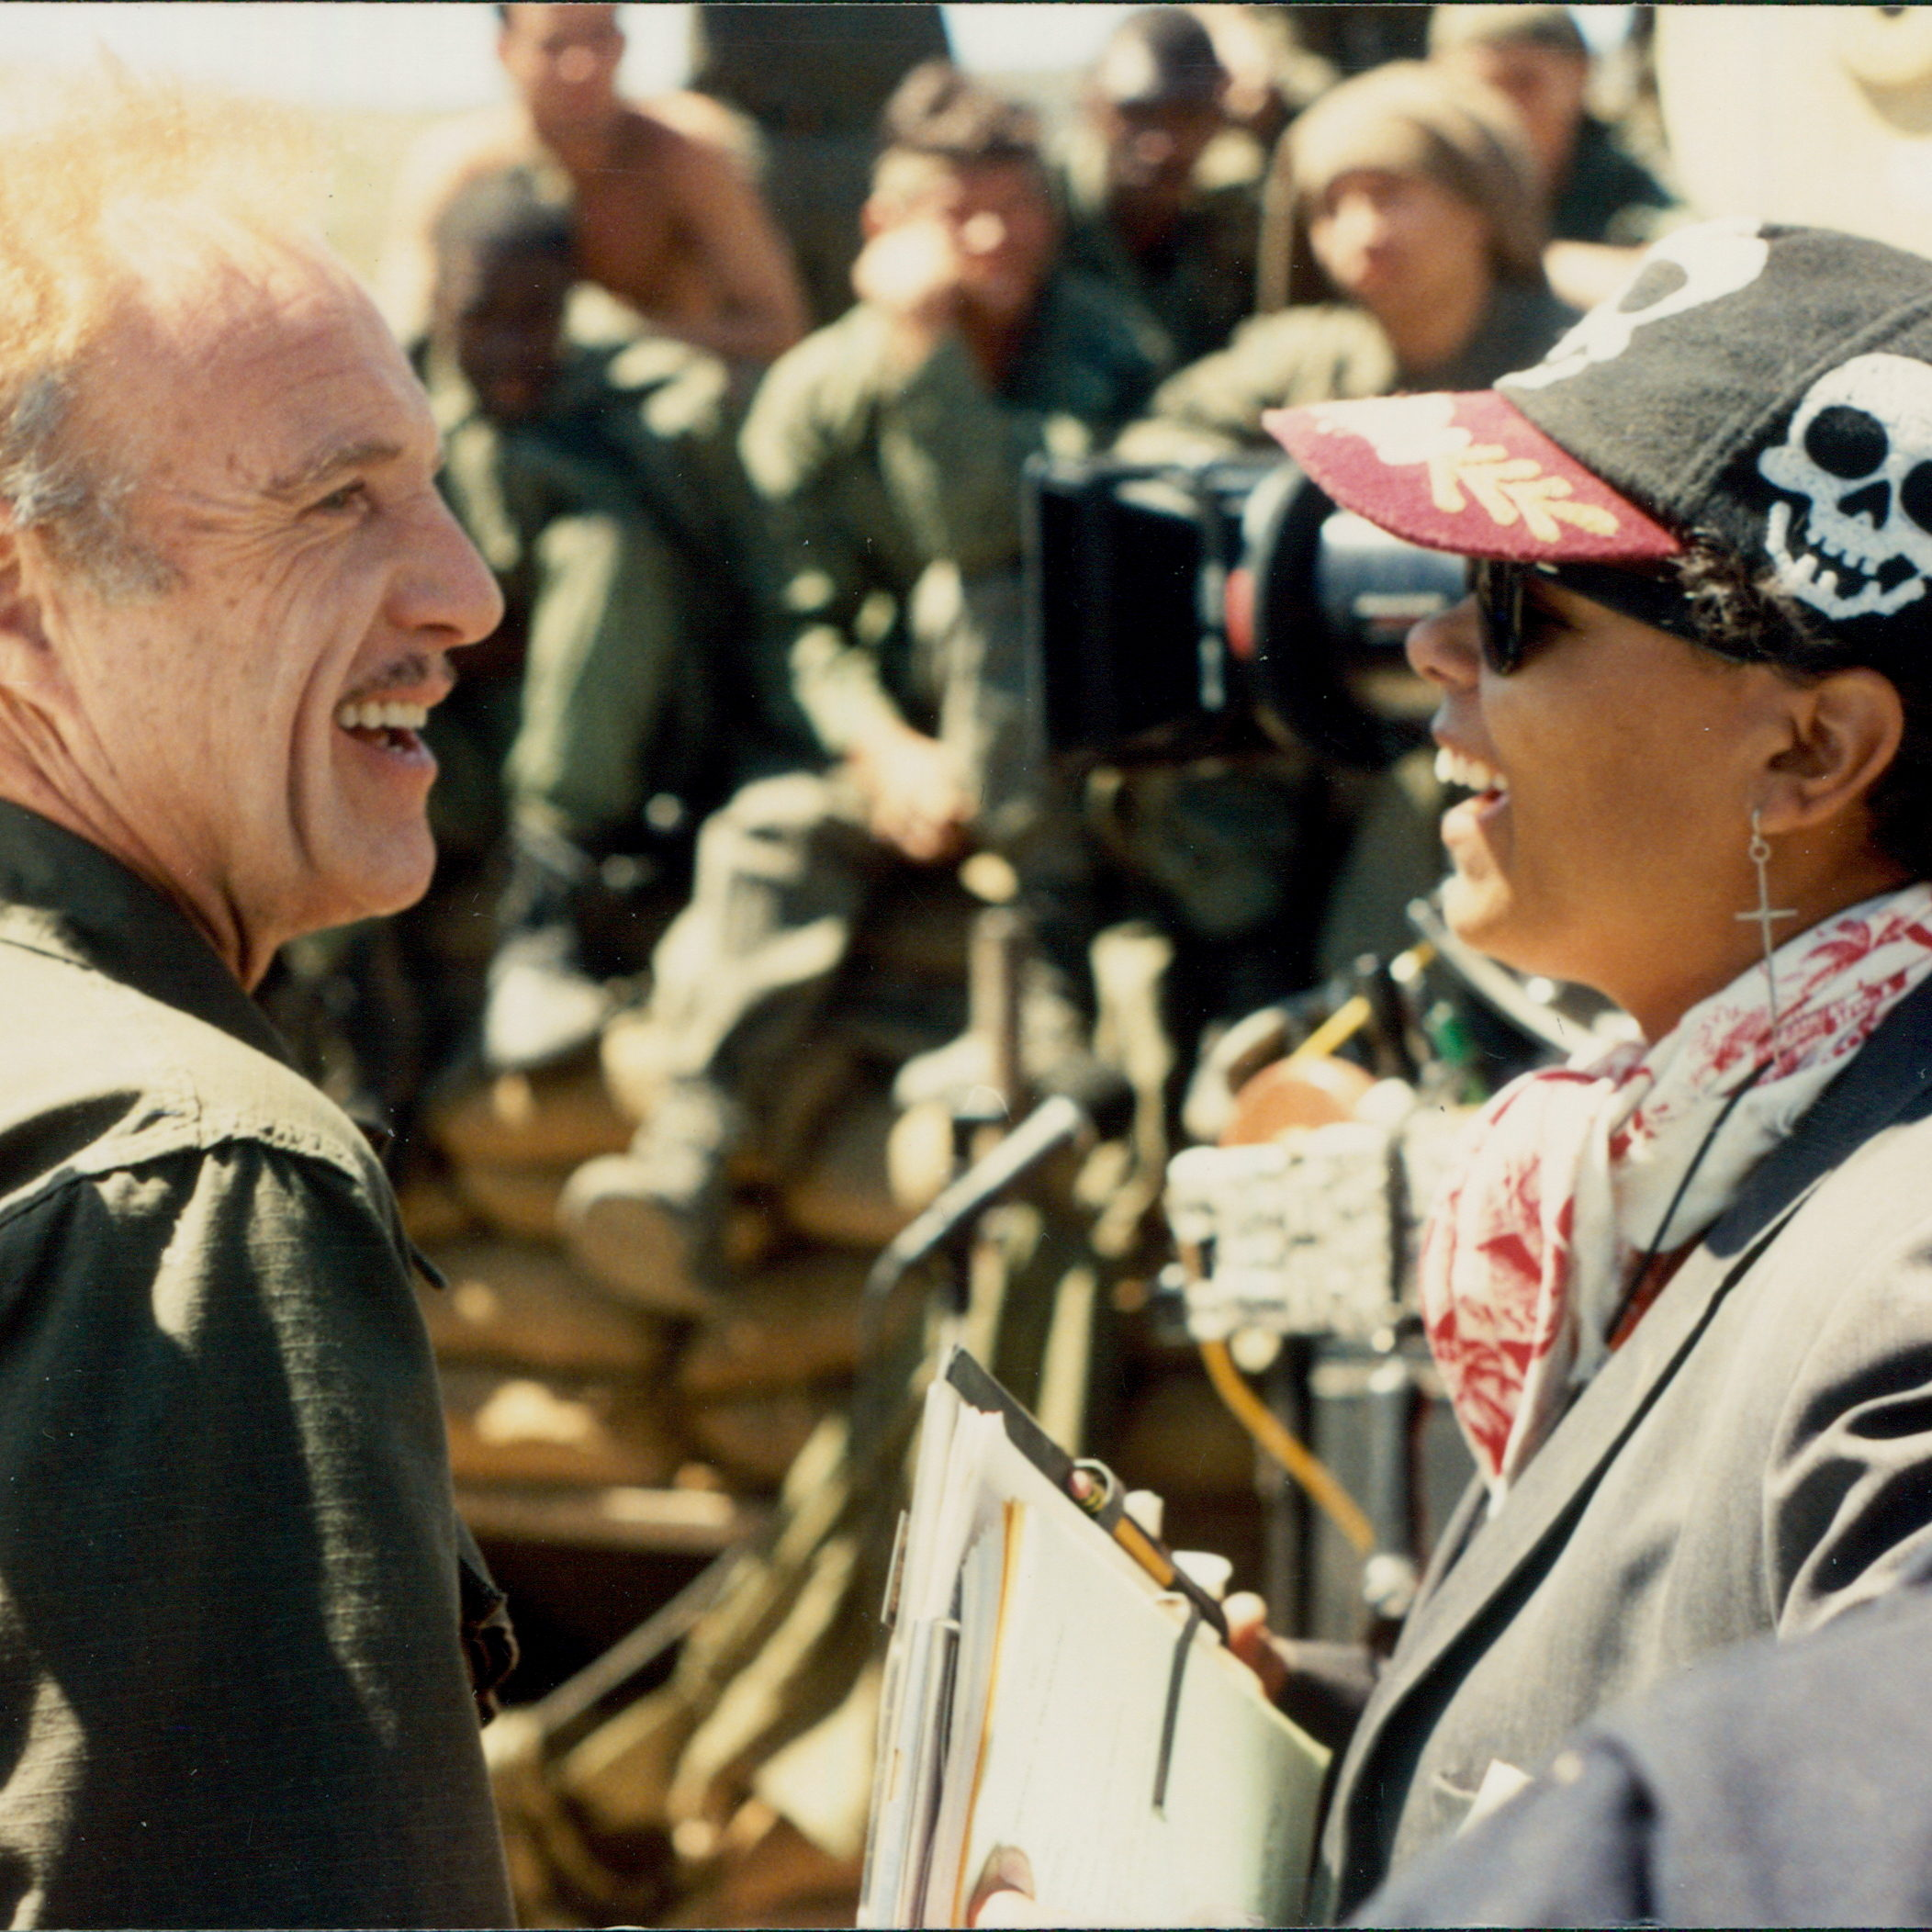 James Caan and Elizabeth Pryor share a laugh between takes.